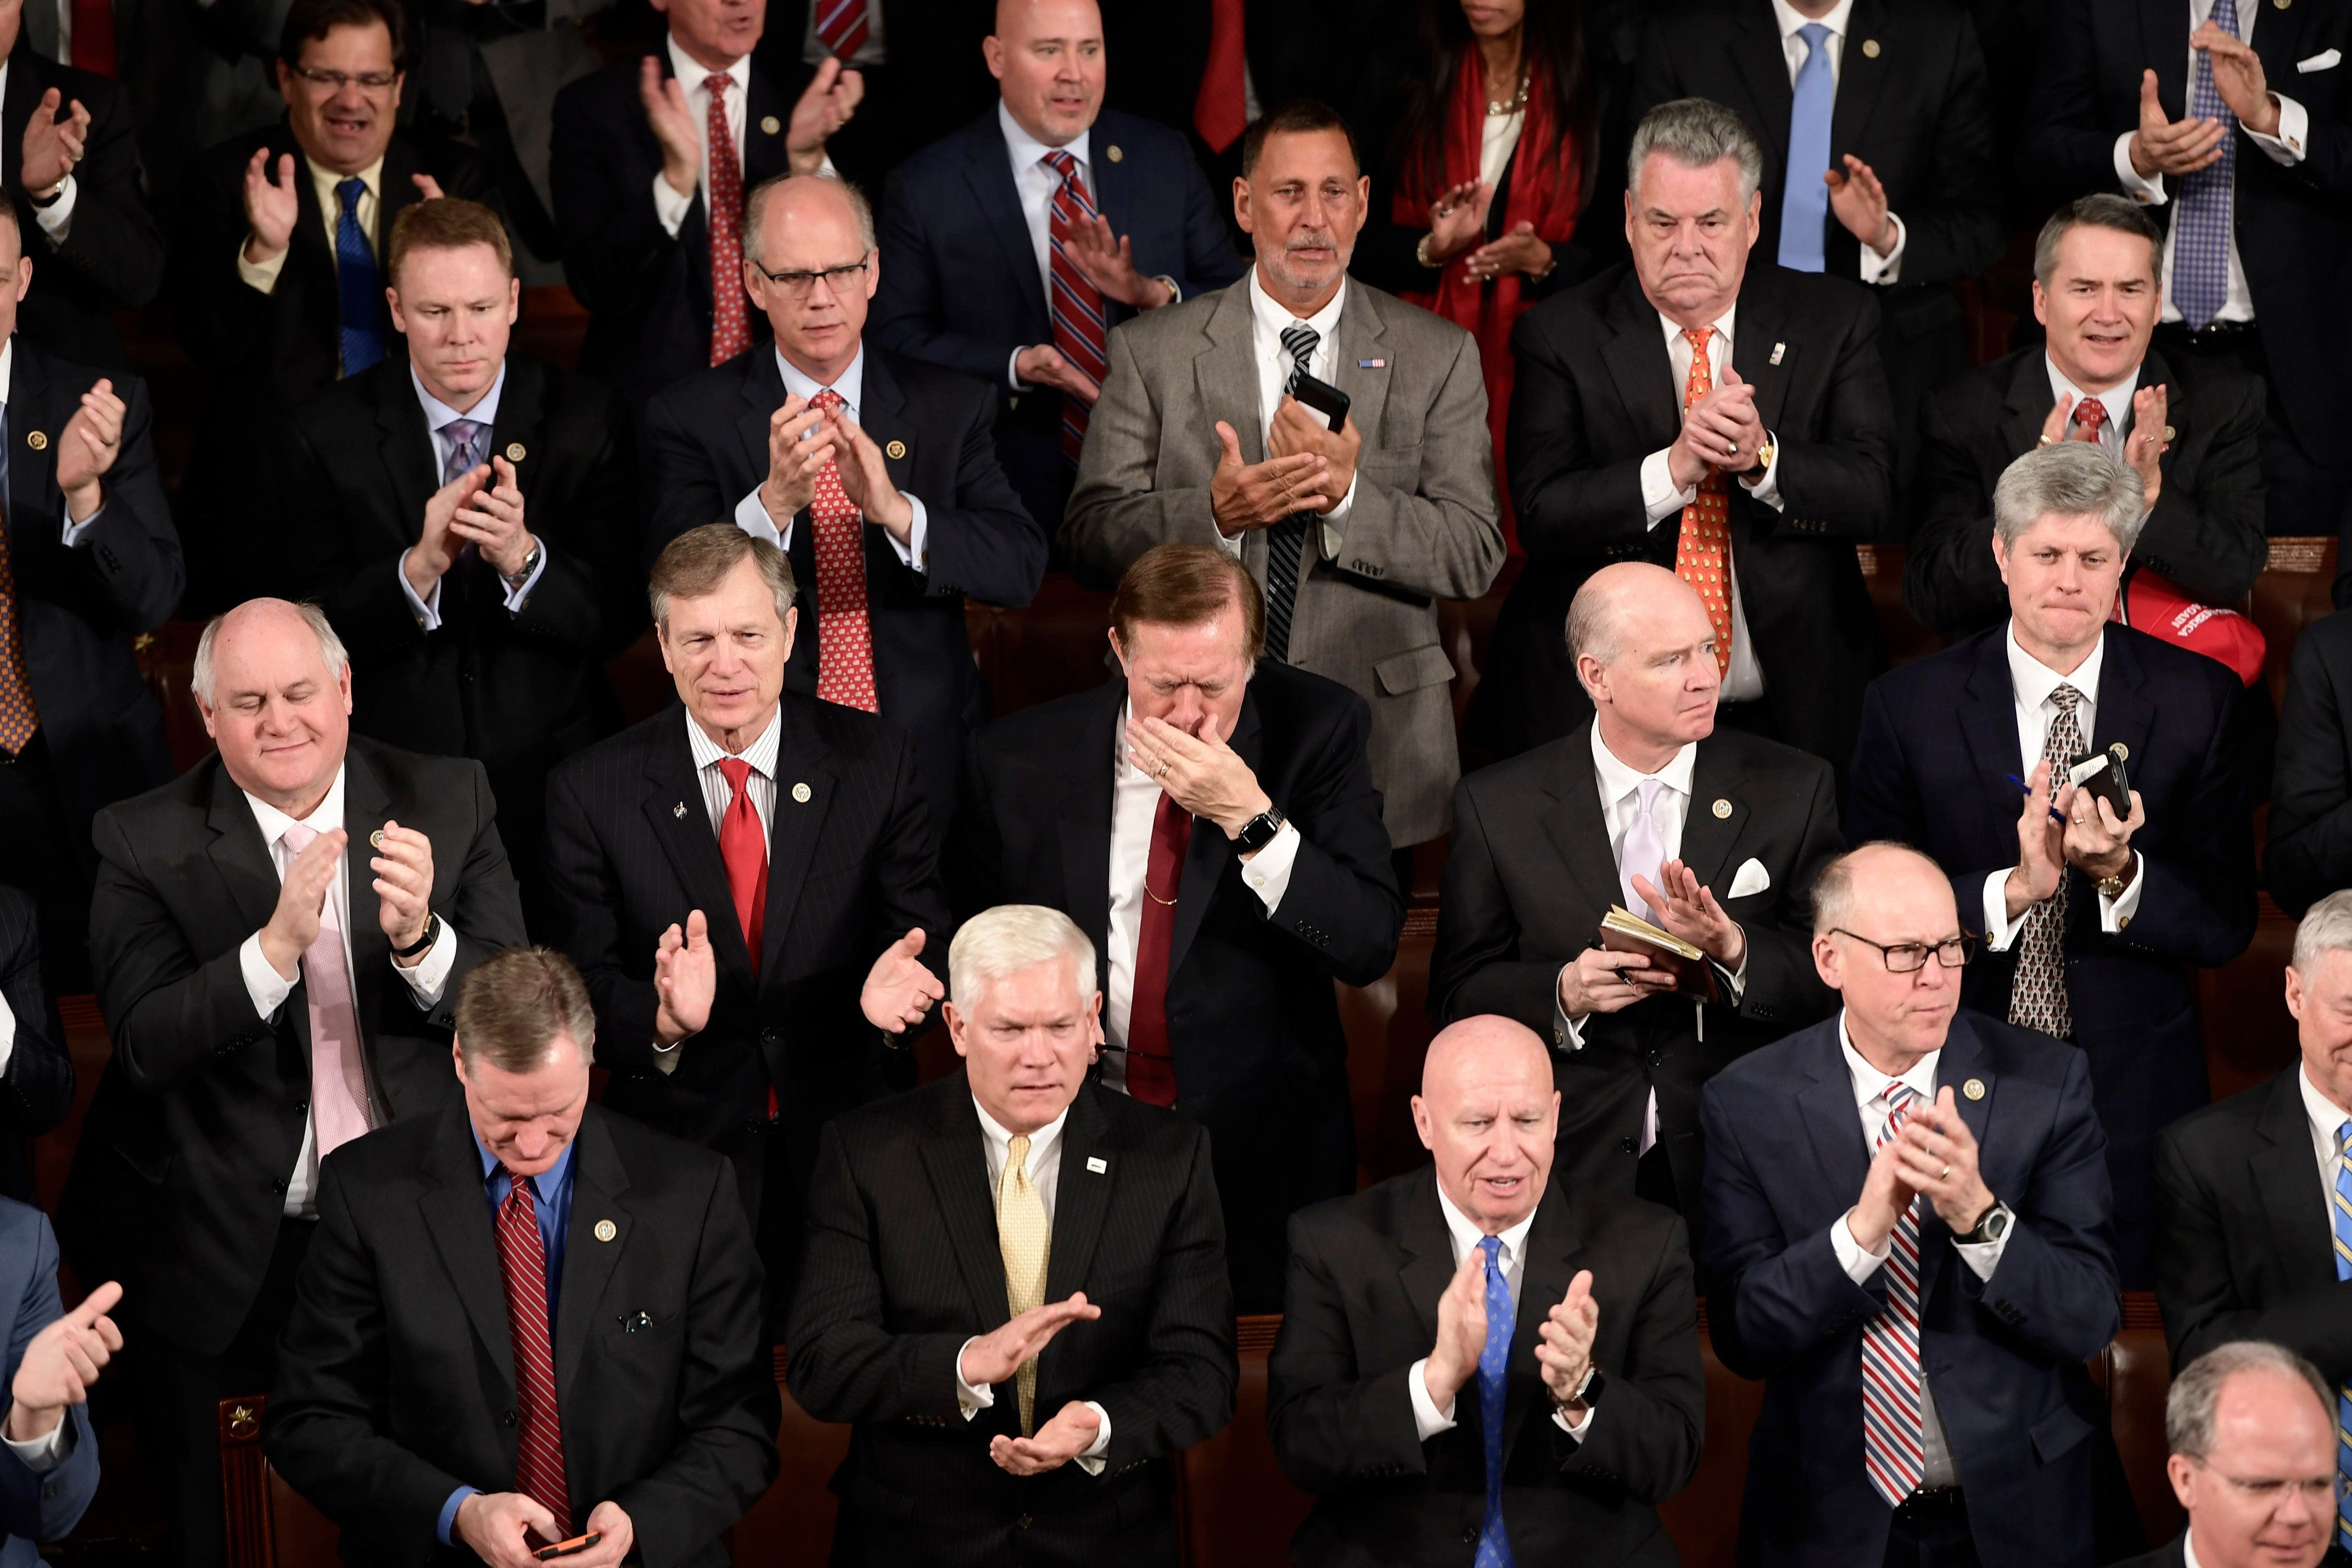 Republican members of Congress clap as US President Donald Trump delivers the State of the Union address at the US Capitol in Washington, DC, on January 30, 2018.  / AFP PHOTO / Brendan Smialowski        (Photo credit should read BRENDAN SMIALOWSKI/AFP/Getty Images)